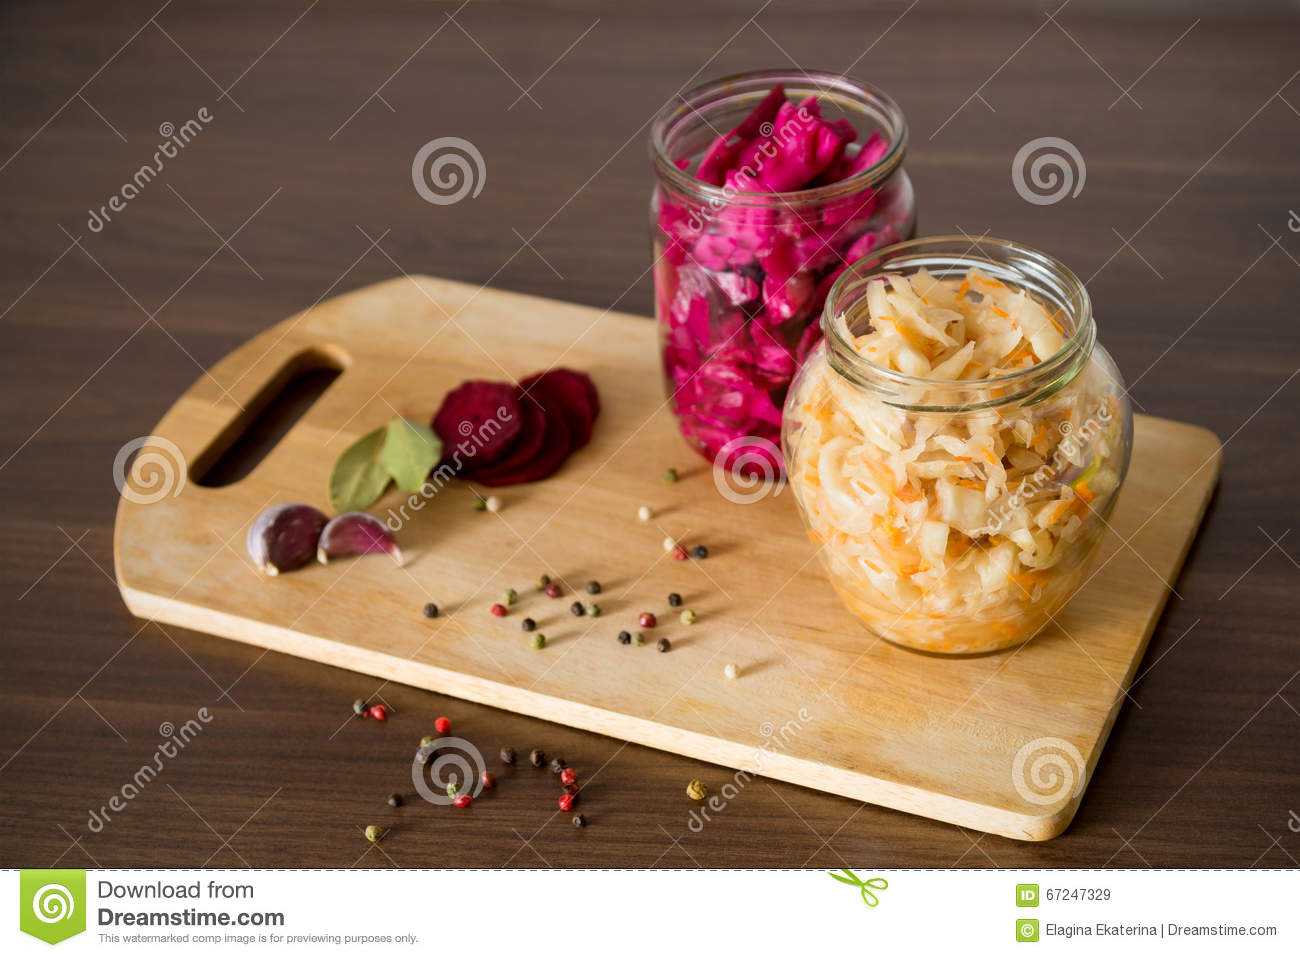 Sauerkraut with beets and spices in a glass jar on wooden backgr